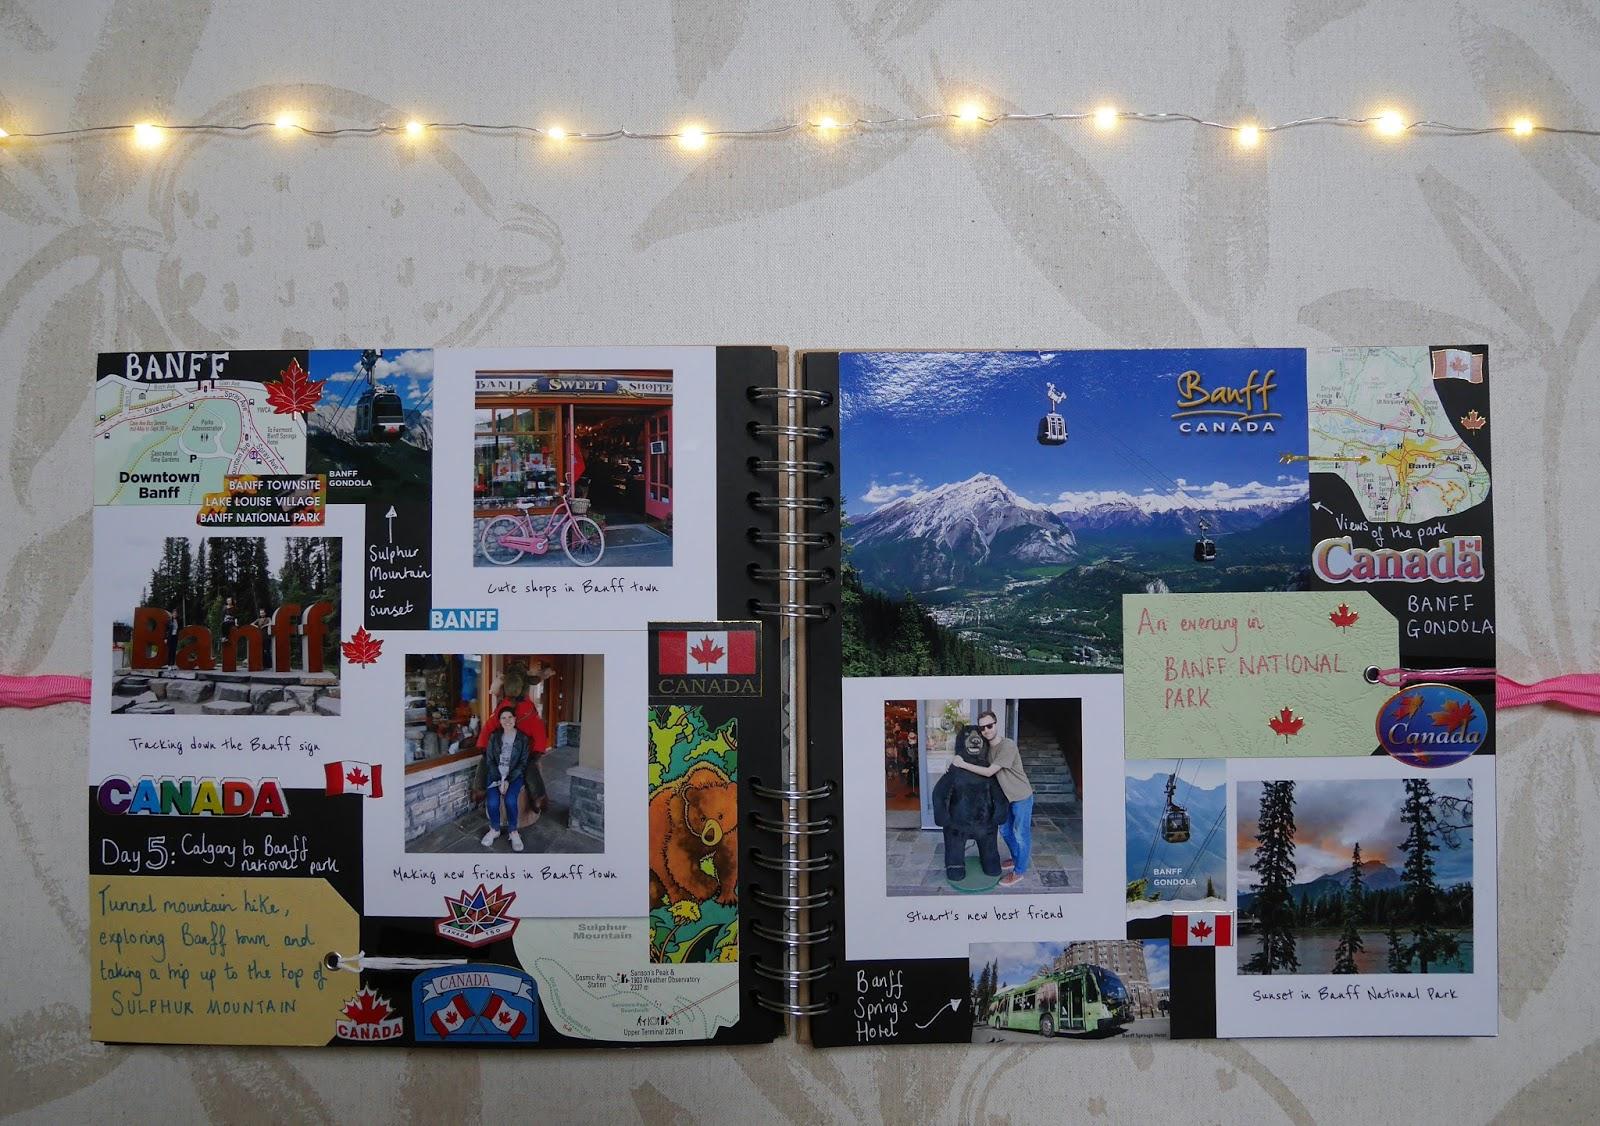 2017 travel scrapbook - Banff National Park, Canada